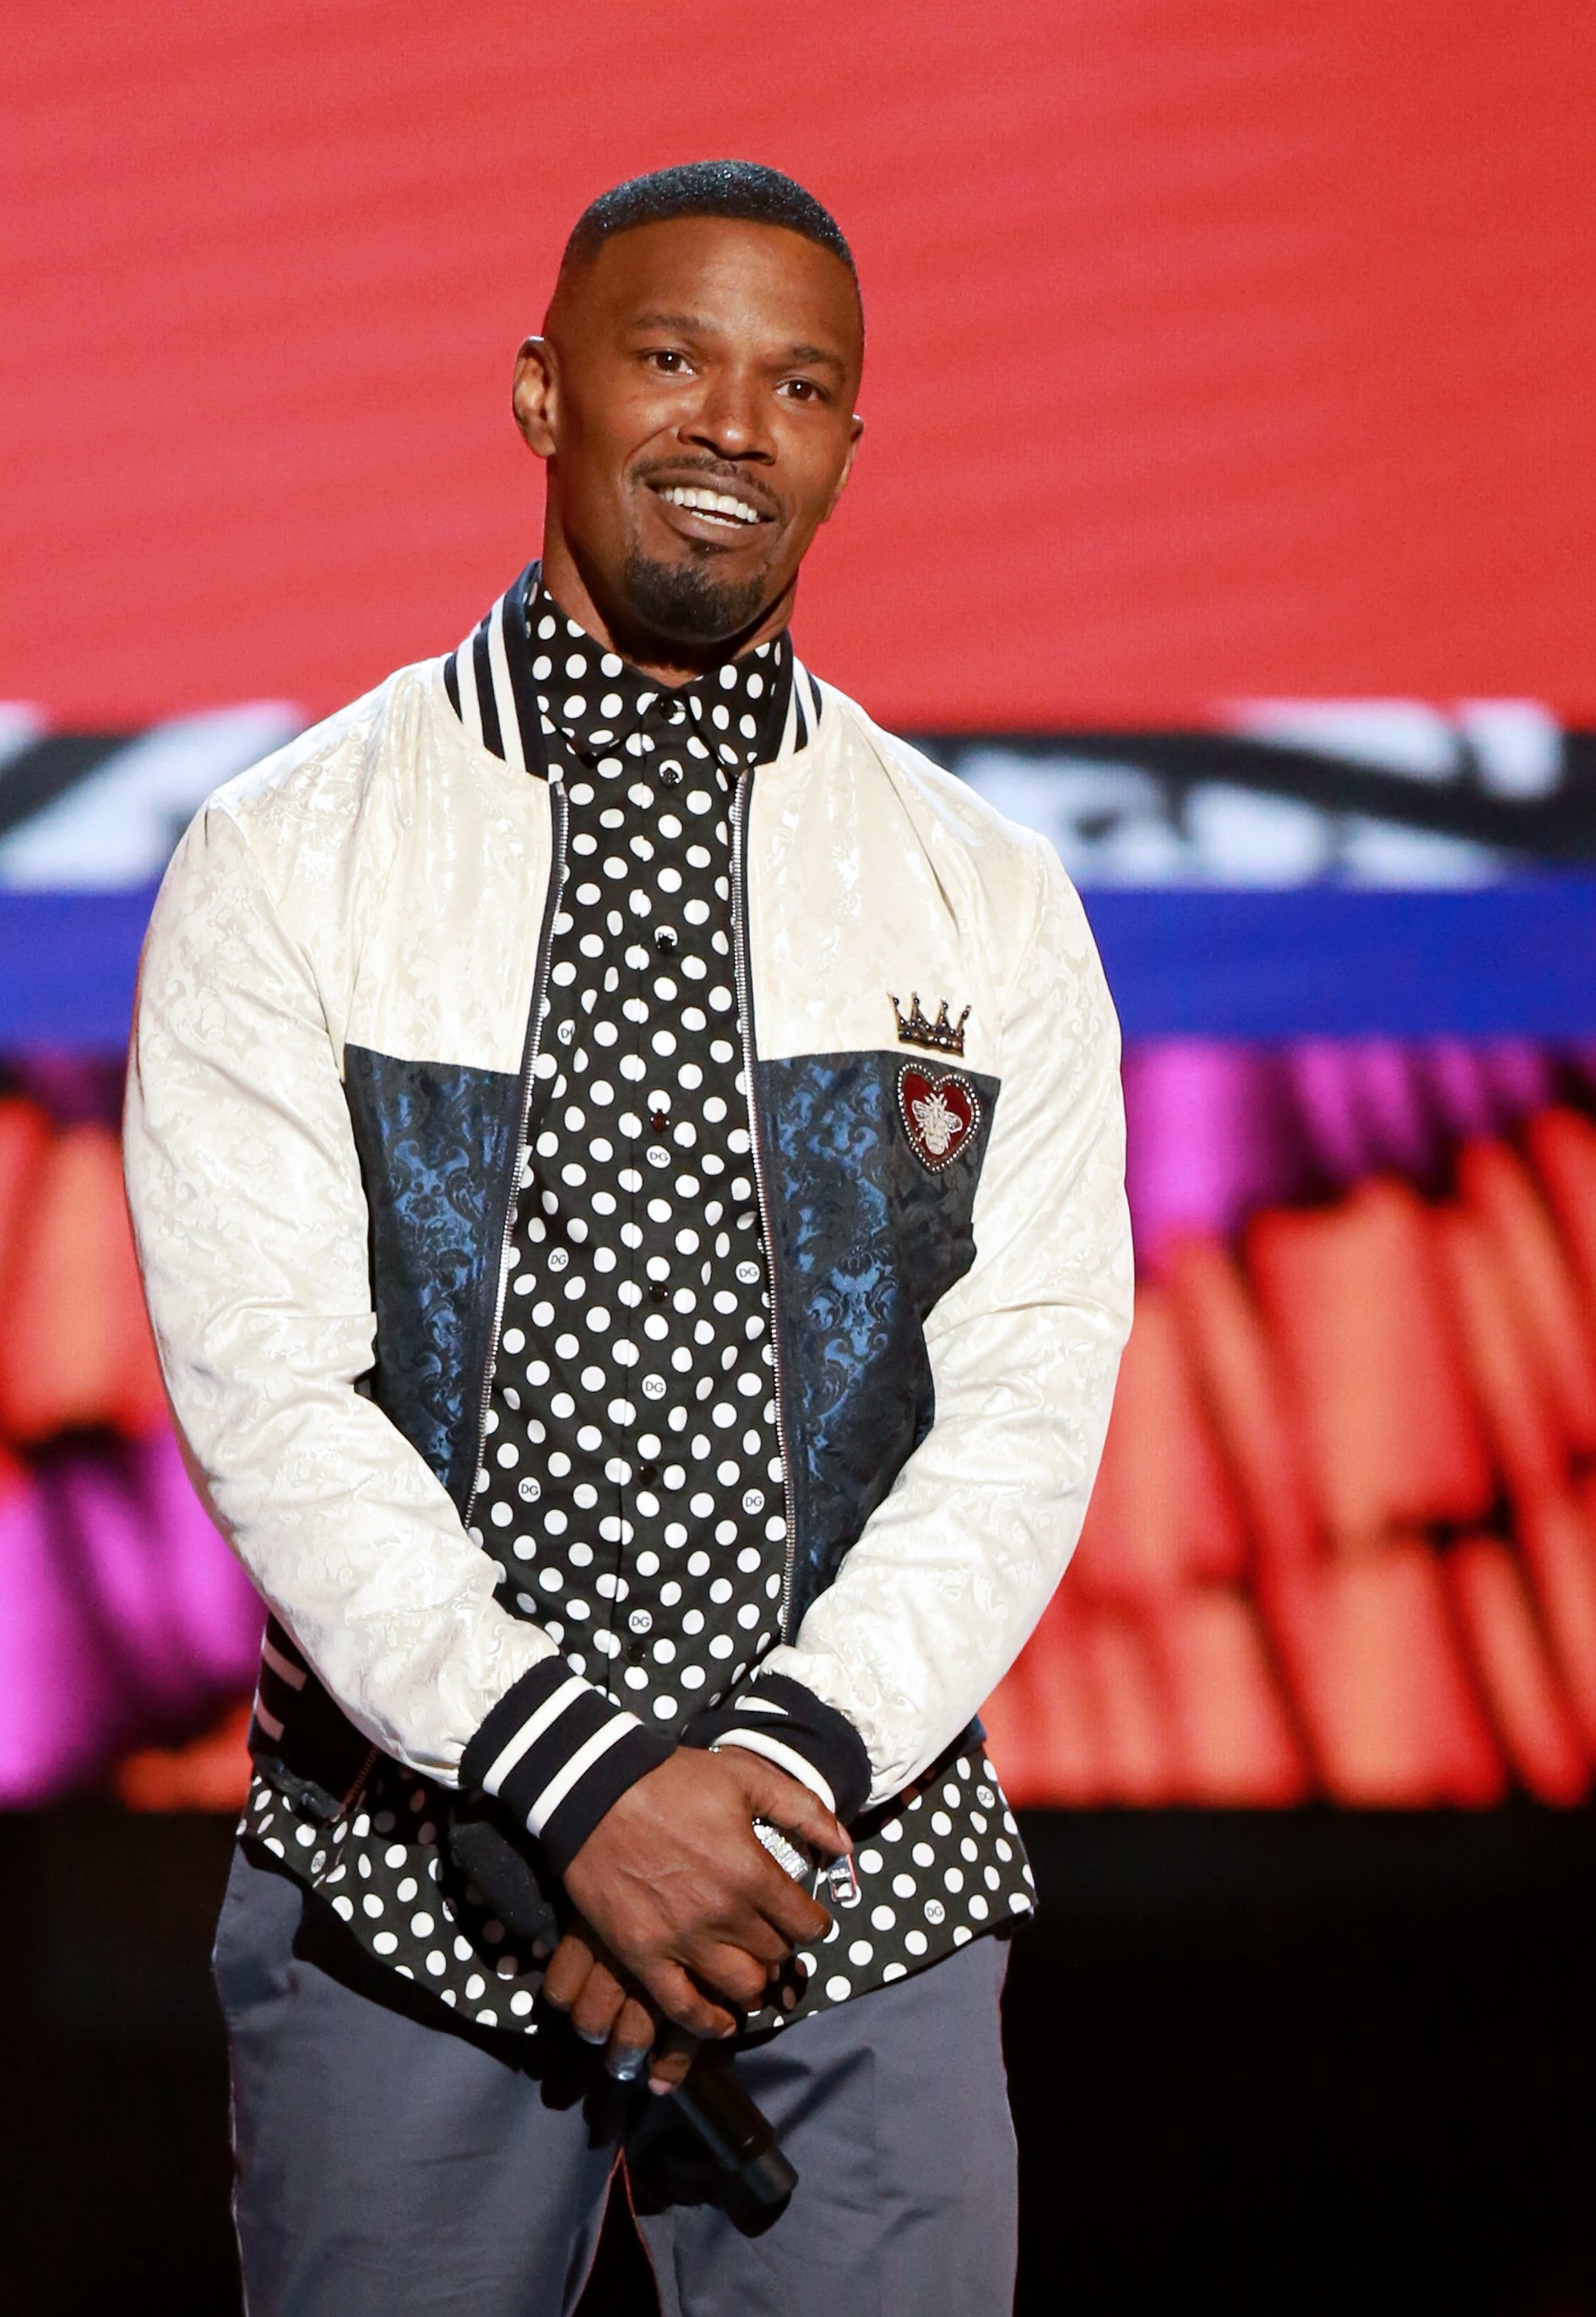 Jamie Foxx onstage at the BET Awards in Los Angeles, California on June 24, 2018 | Photo: Getty Images